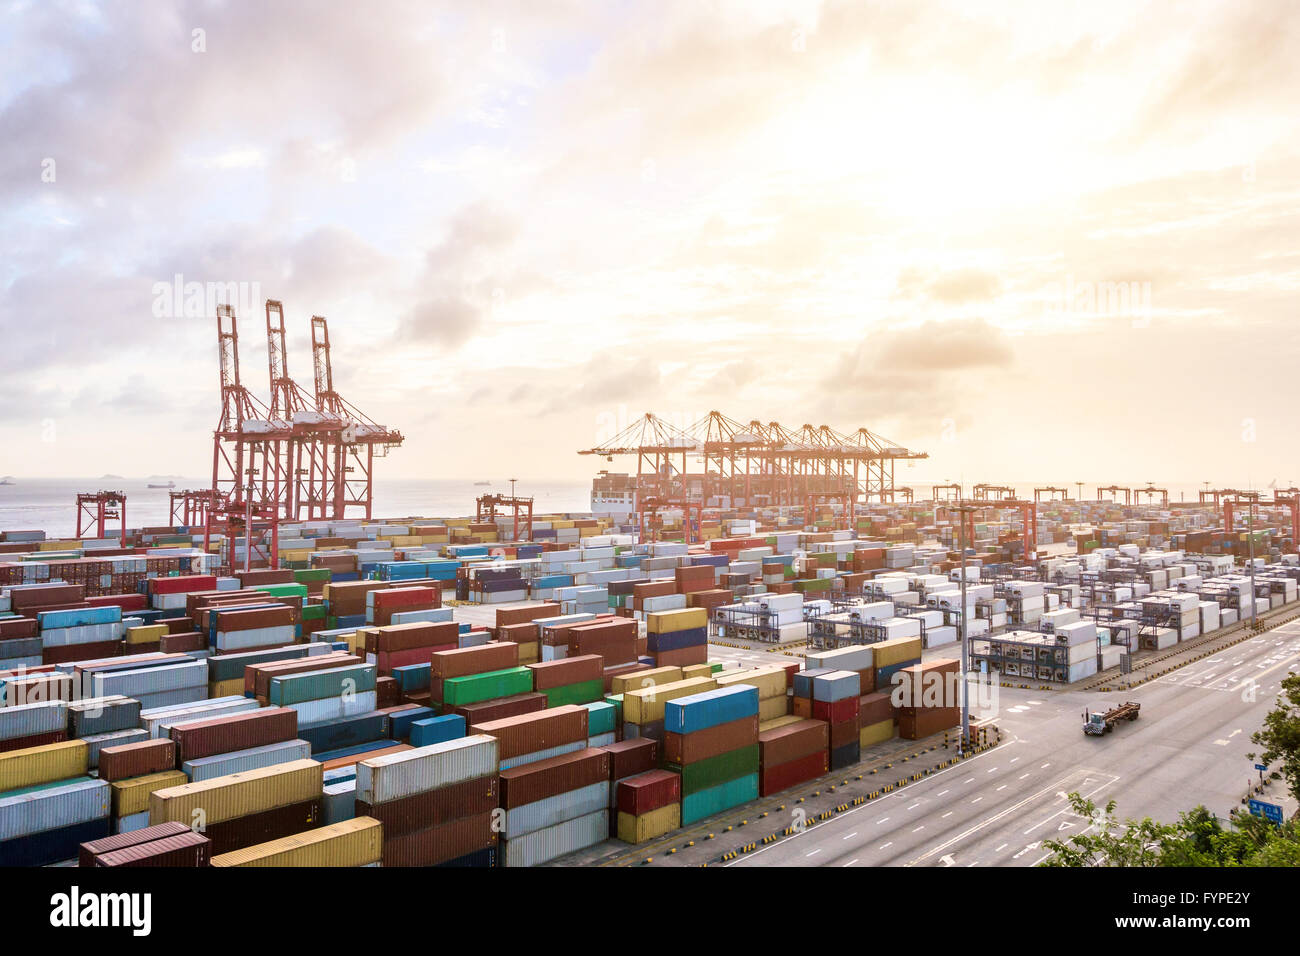 Industrial port at dawn at the Port of shanghai - Stock Image